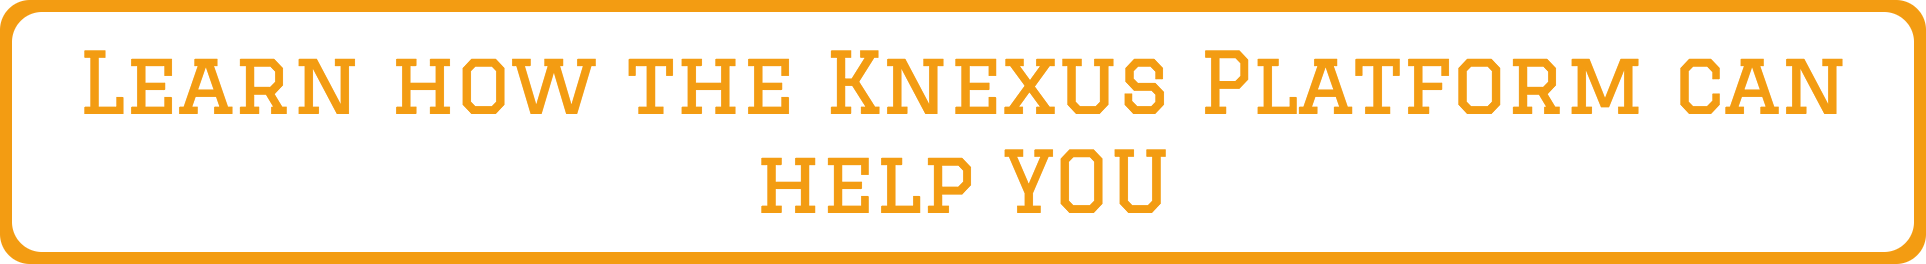 Get a demo at Knexus